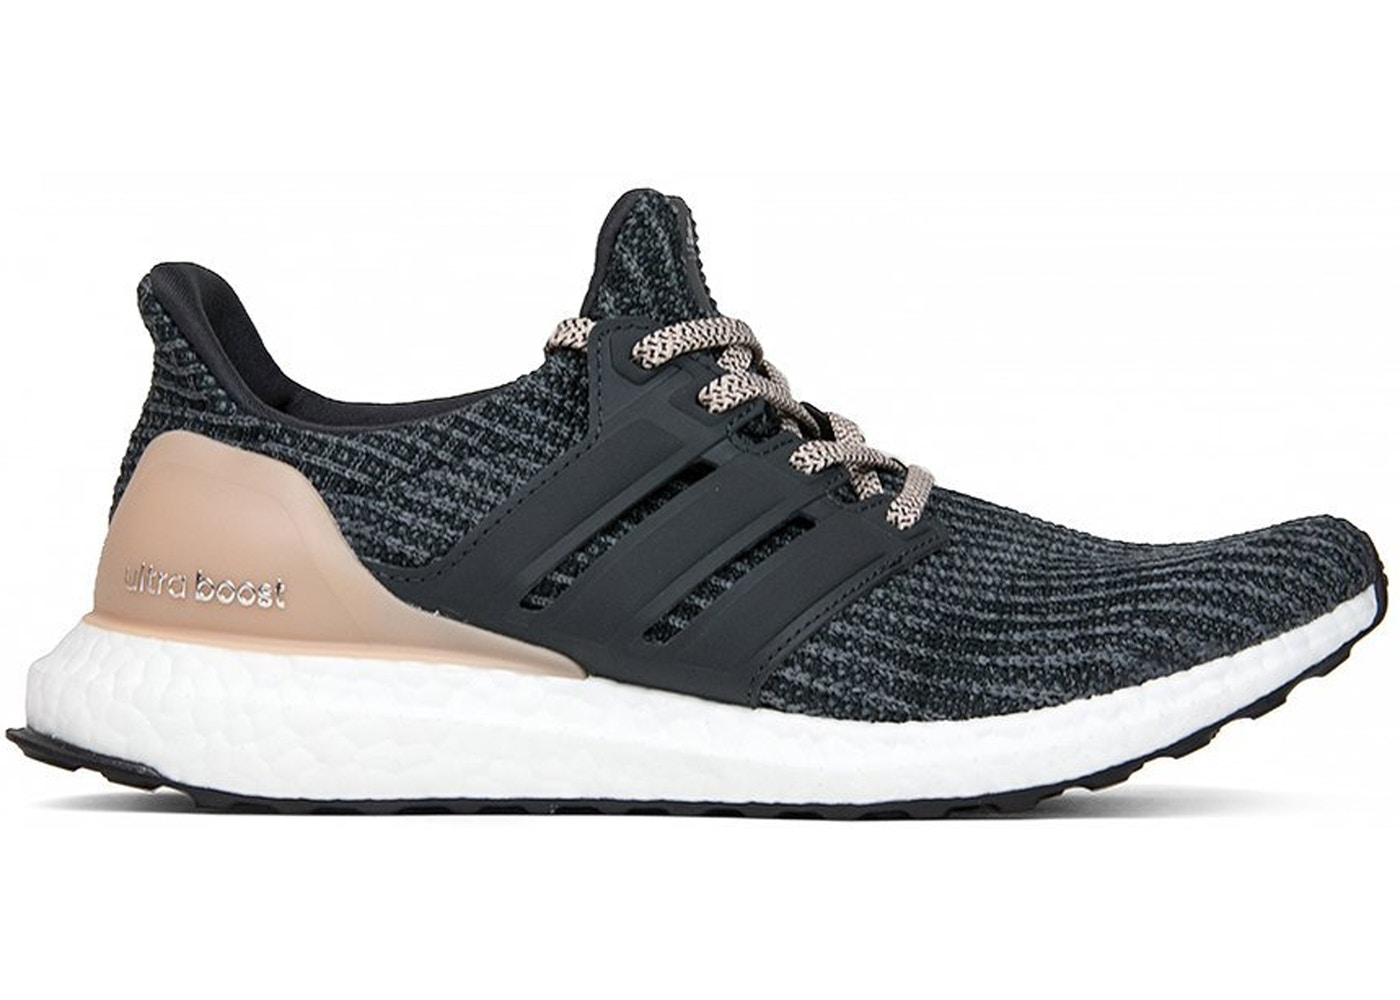 Adidas ULTRABOOST 4.0 Cookies and Cream Oreo / Tastier than the